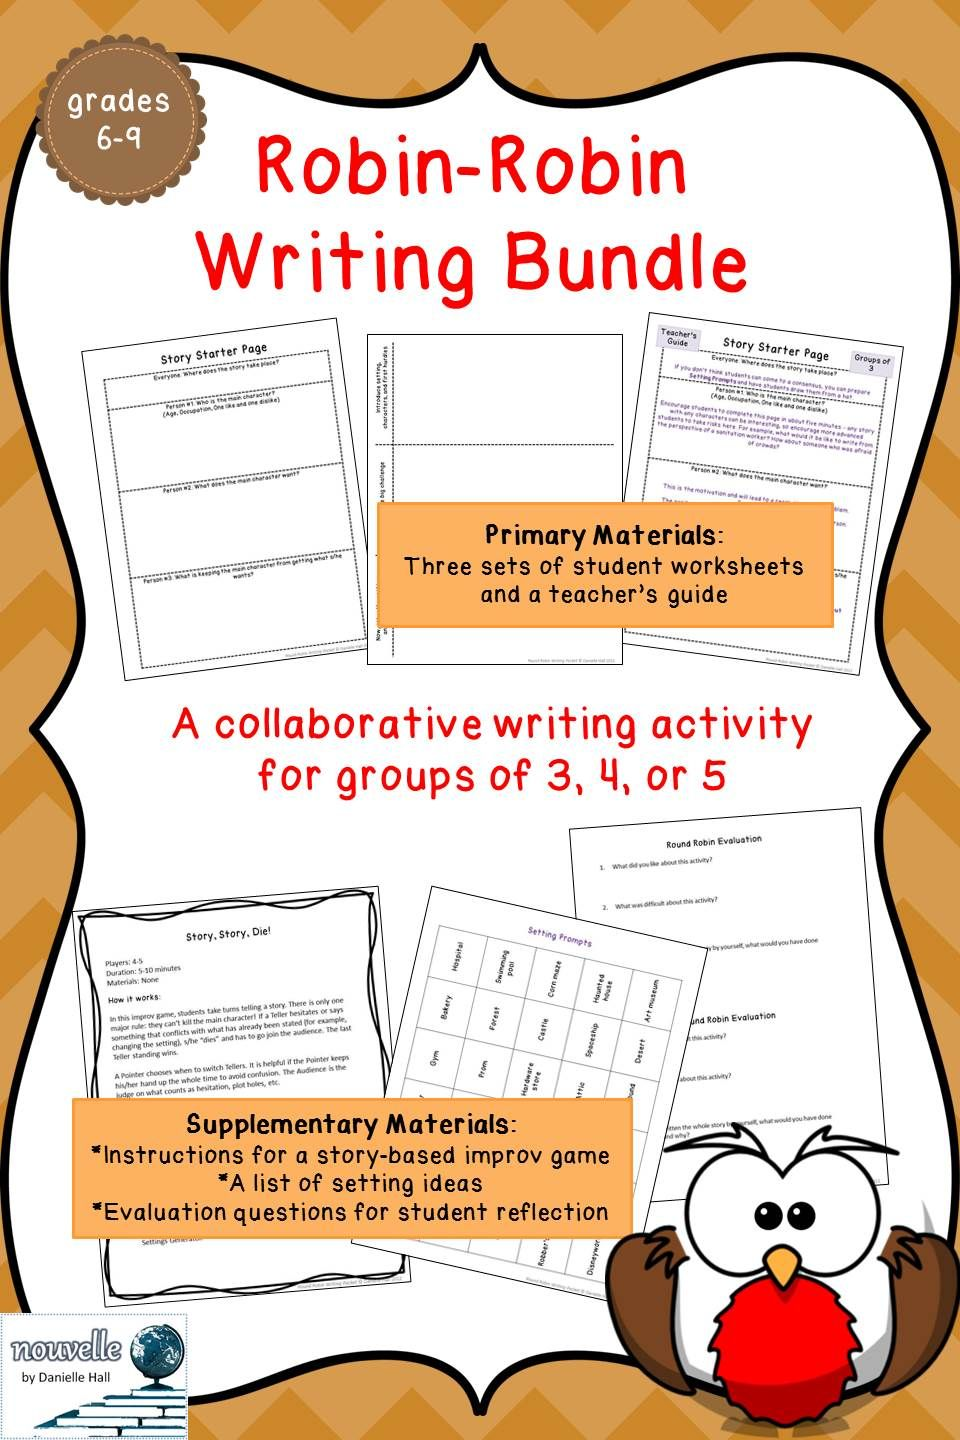 Round Robin Creative Writing Activity With Images Writing